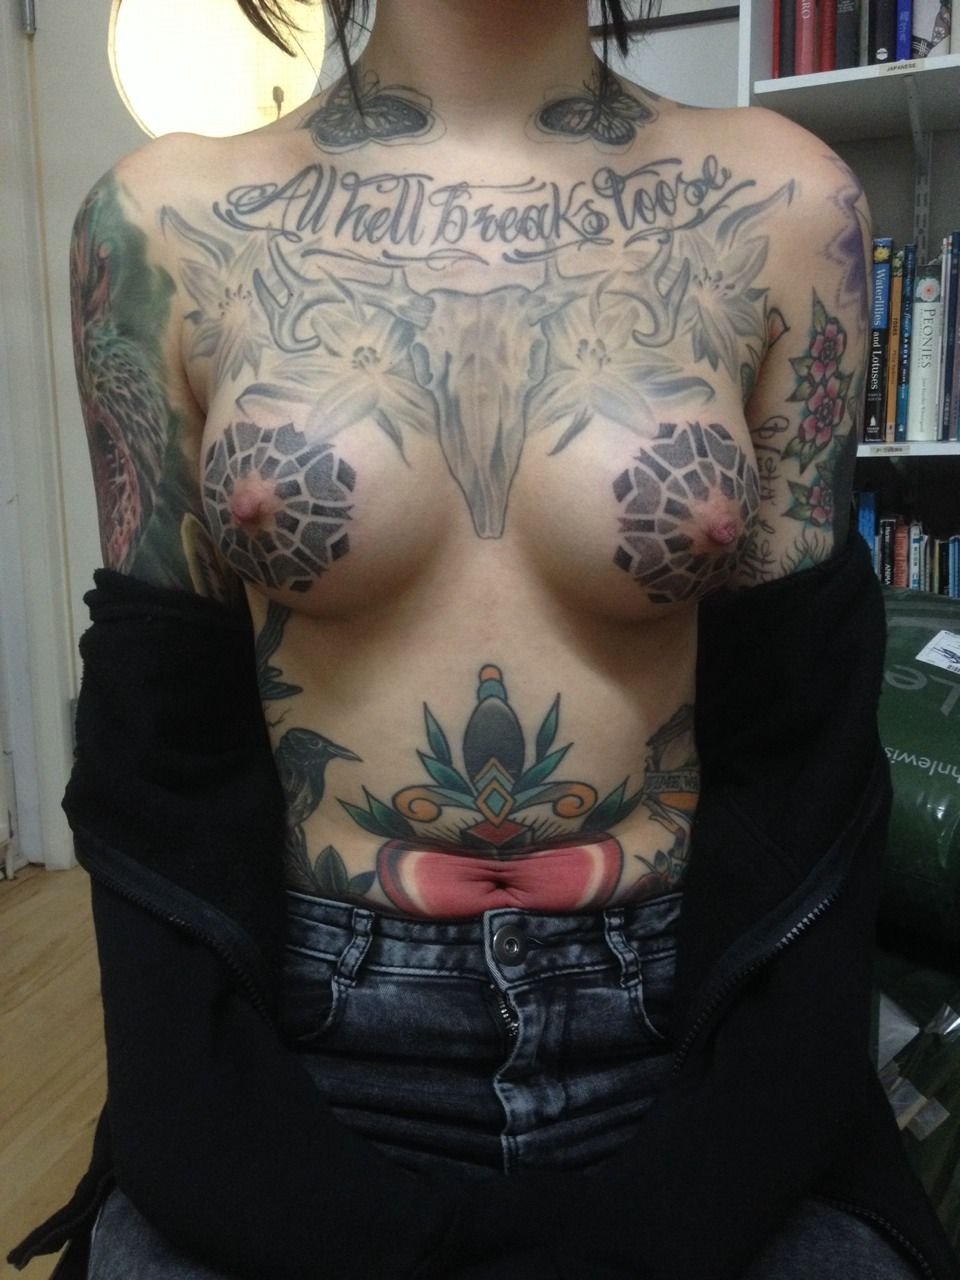 Big Boobed Naked Women With Tattoos